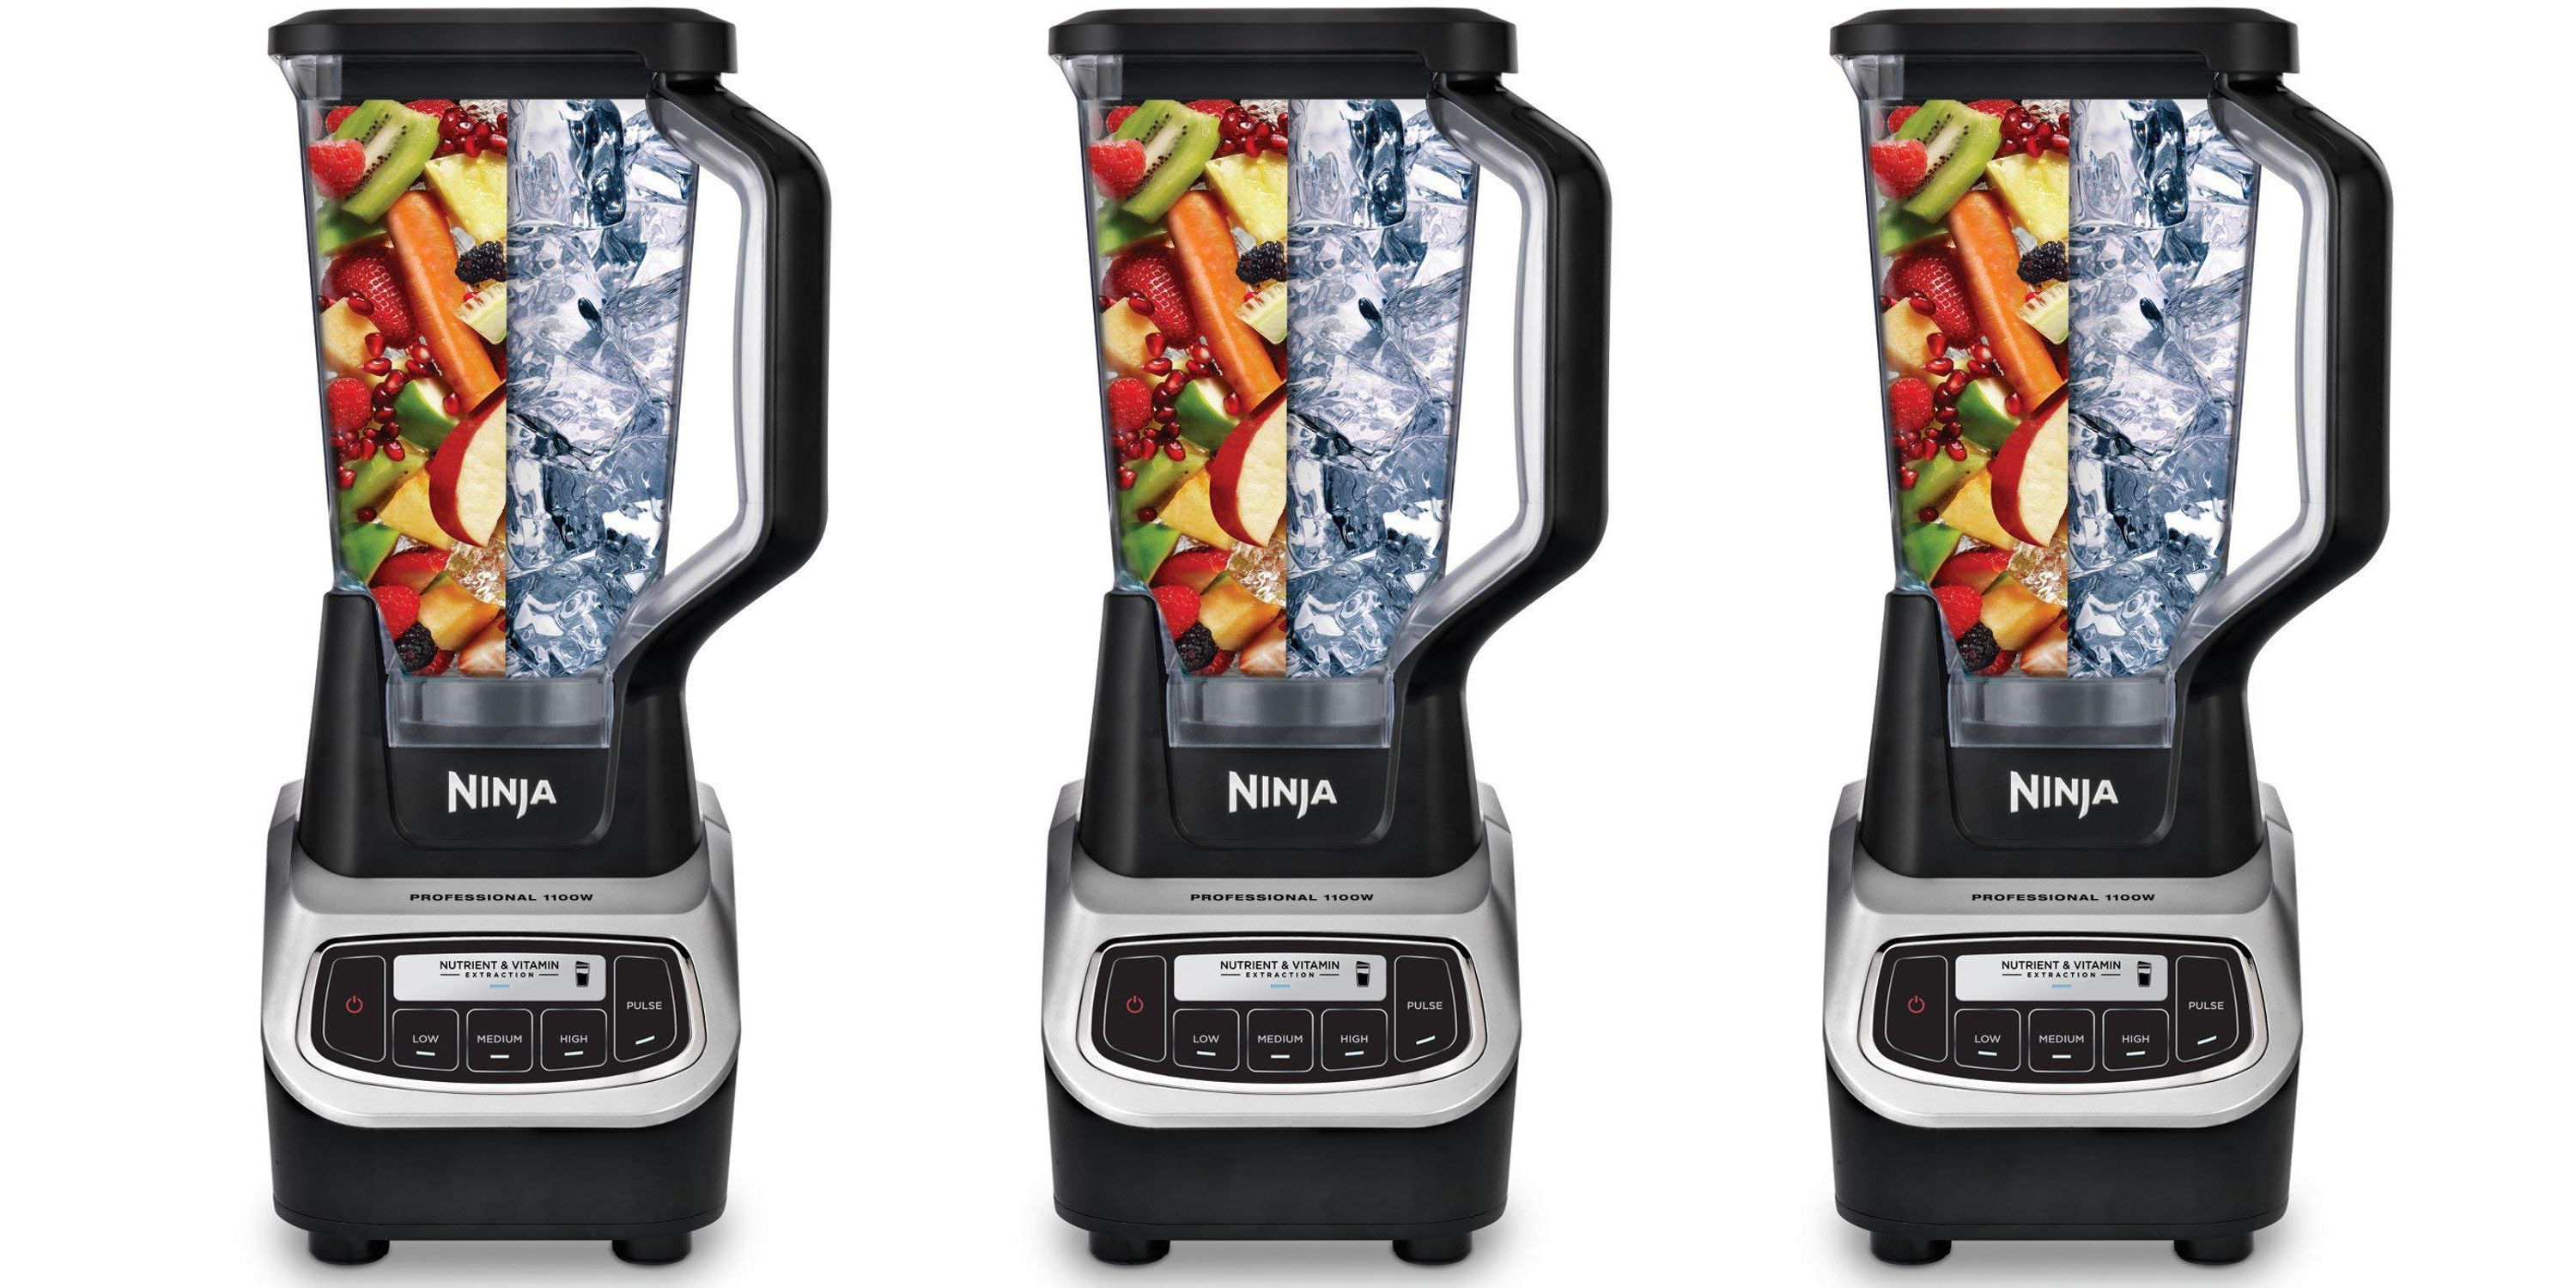 Ninja Pro Blender w/ 2 smoothie cups drops to $70 for today only (Reg. $120+)